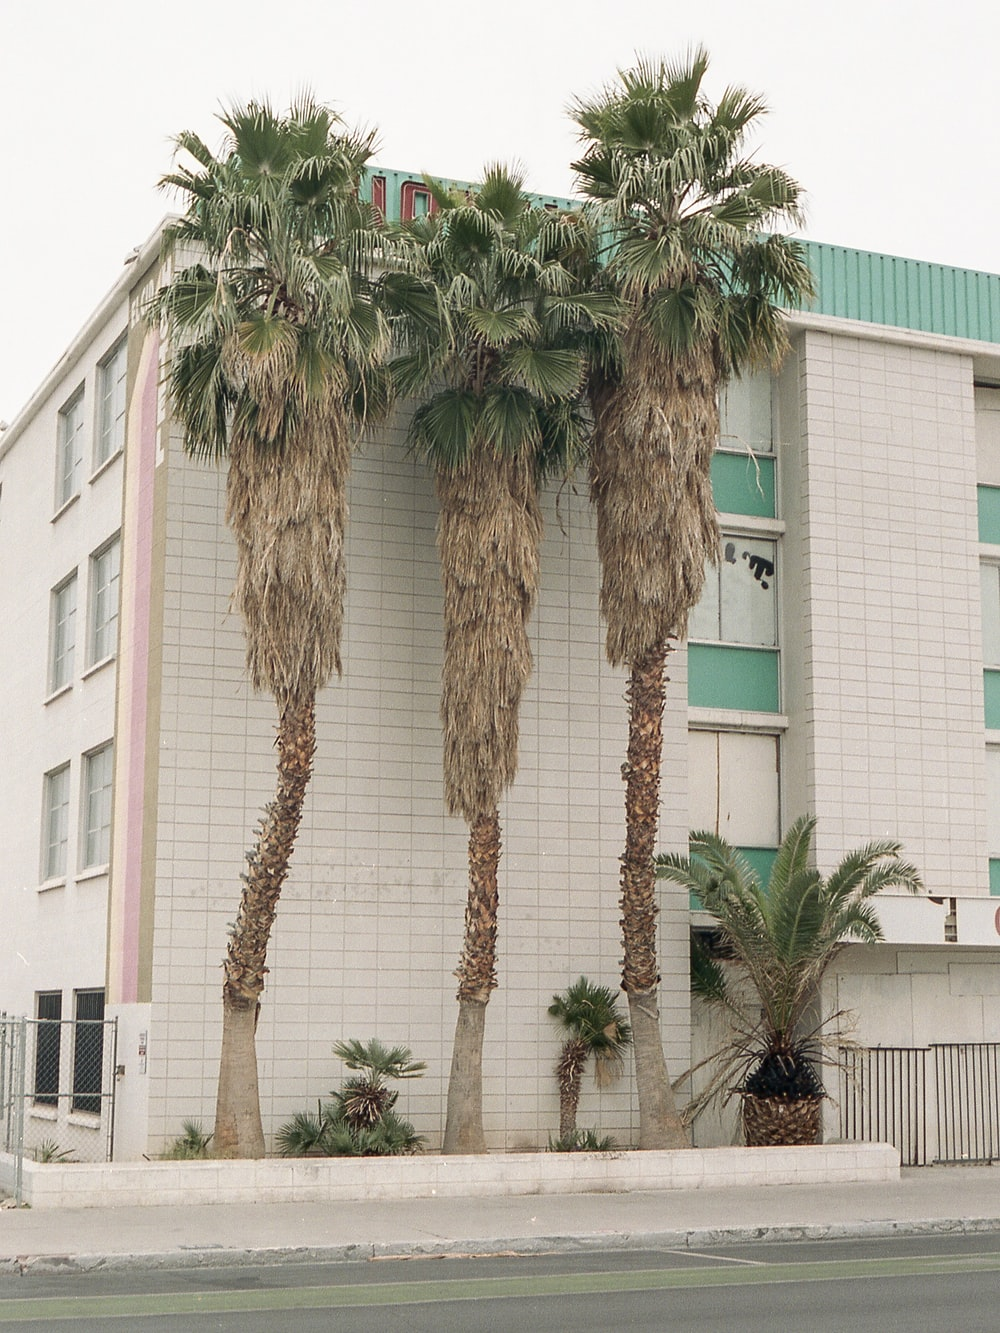 palm tree in front of white concrete building